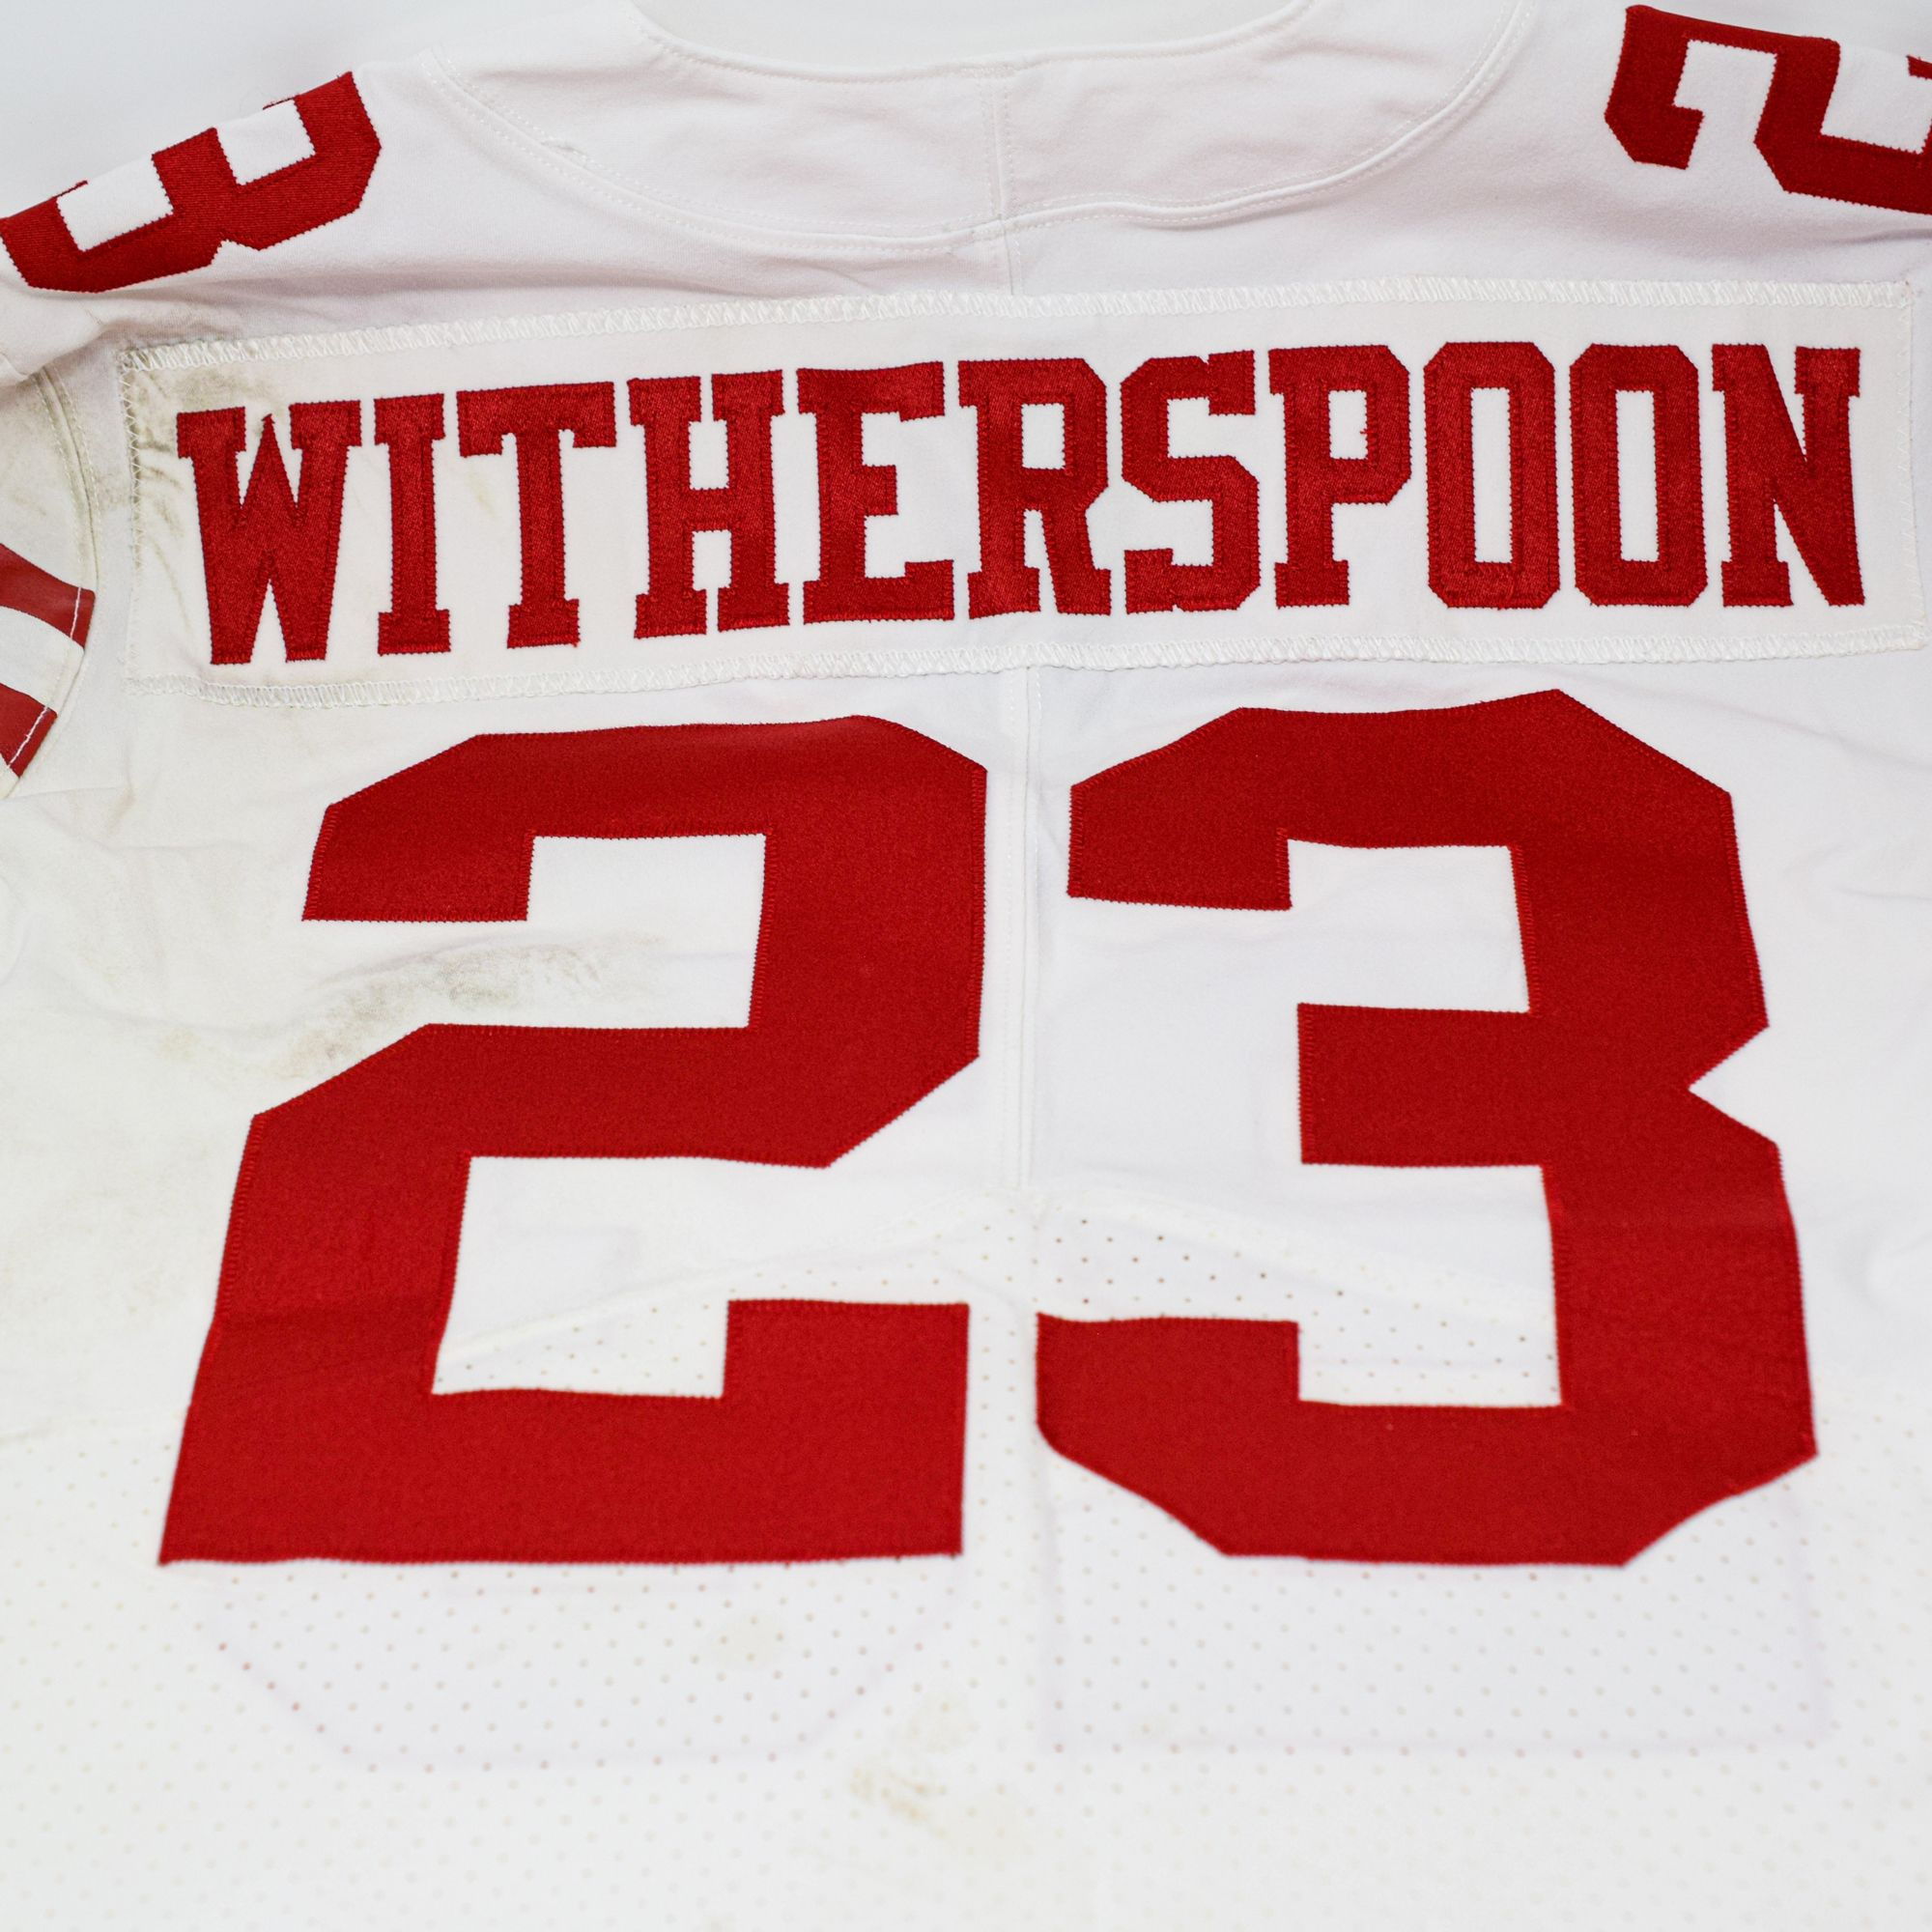 Ahkello Witherspoon Game Worn Jersey